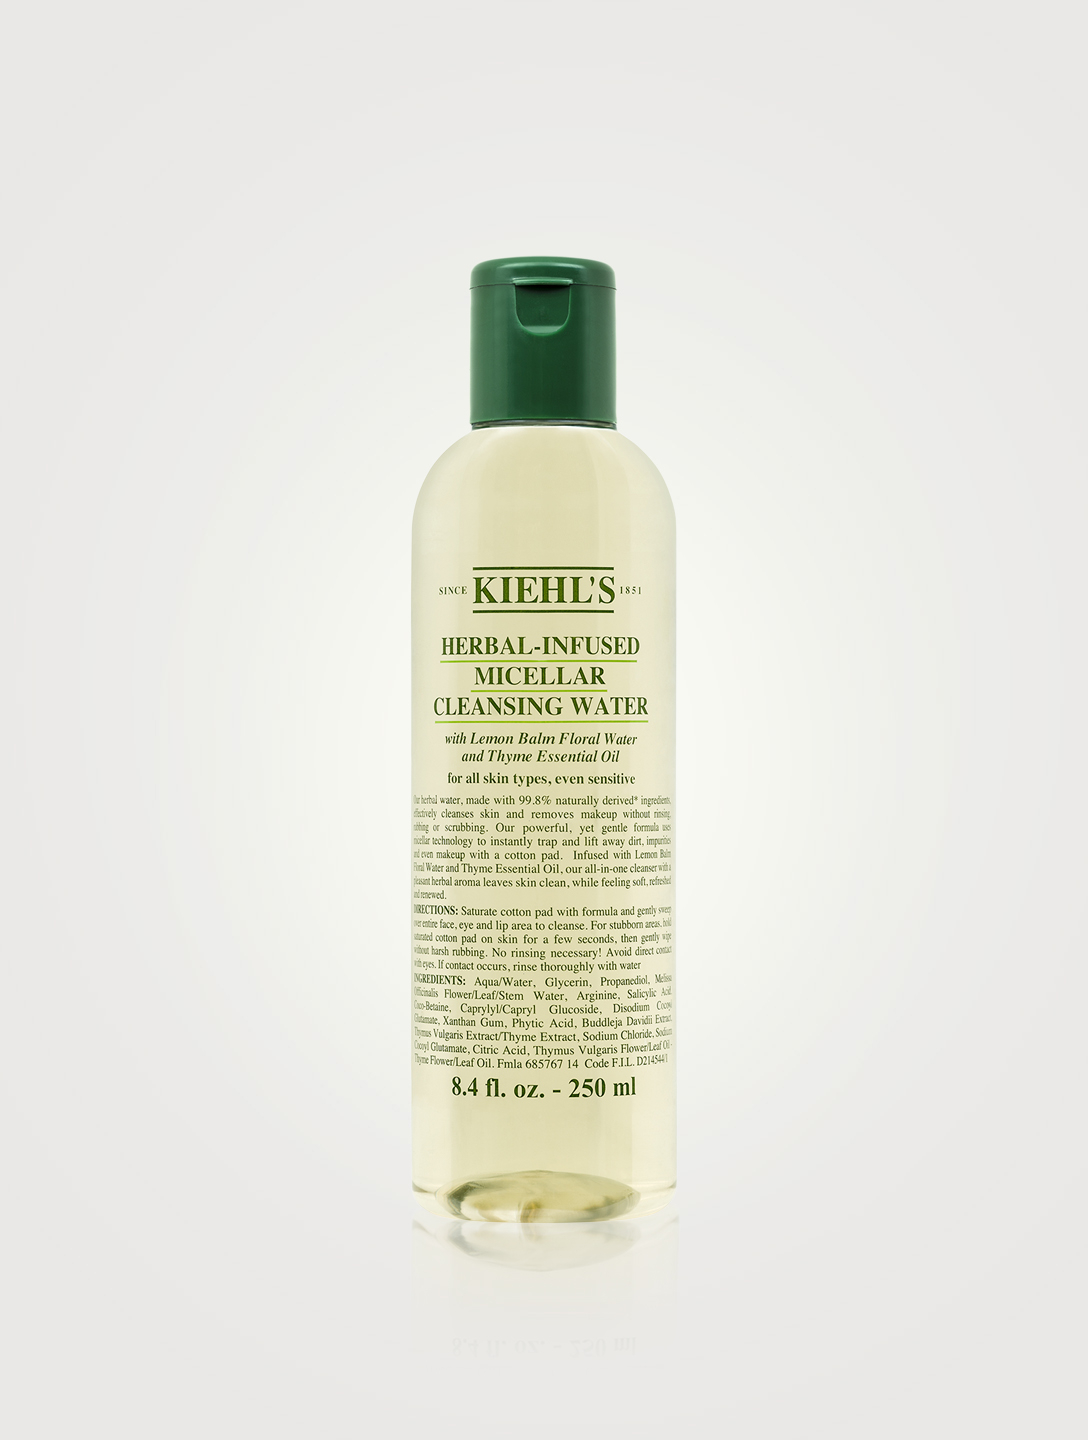 KIEHL'S Herbal-Infused Micellar Cleansing Water Beauty